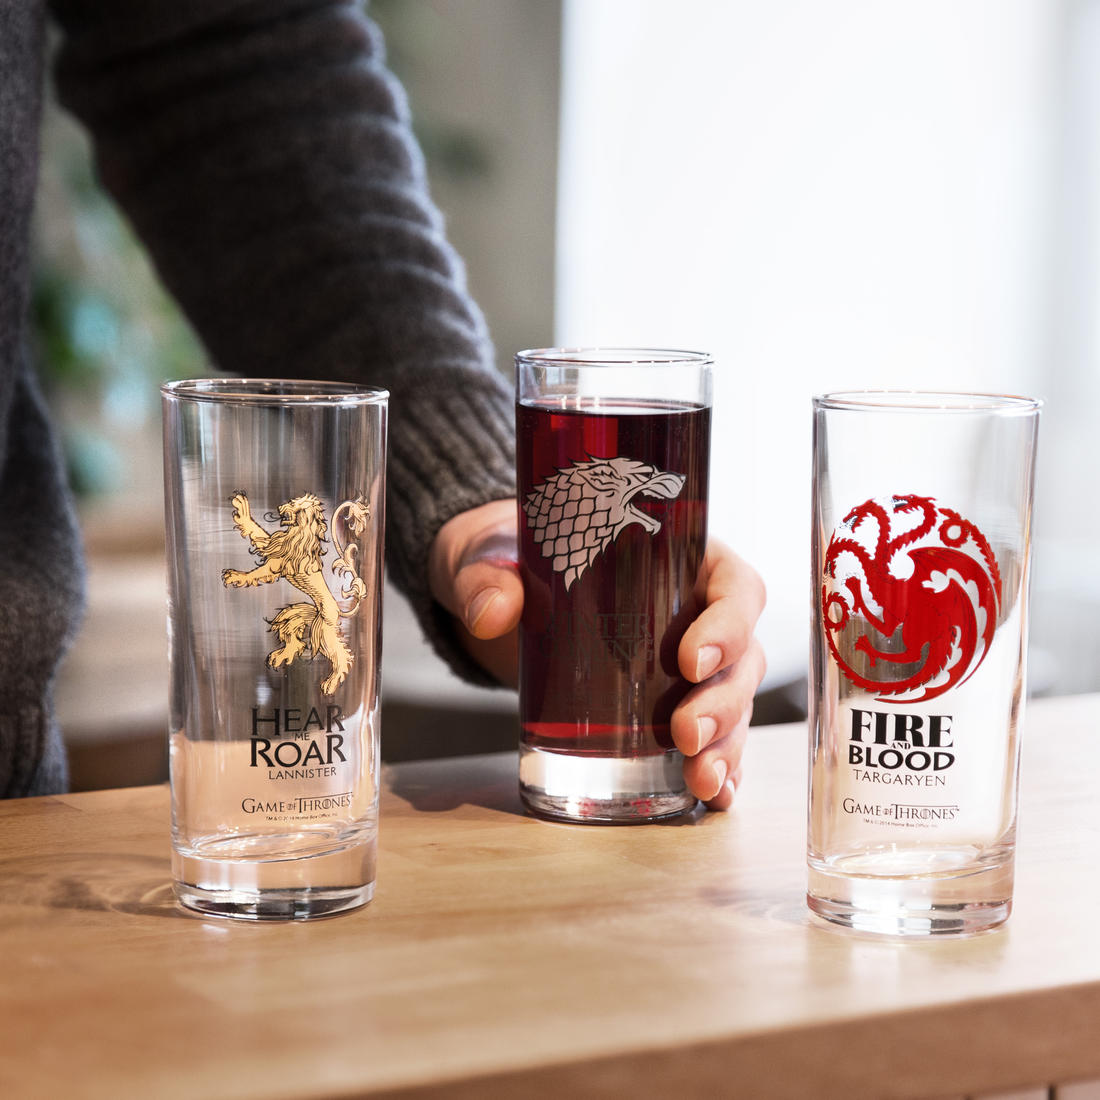 Game Of Thrones Glaser Set Getdigital